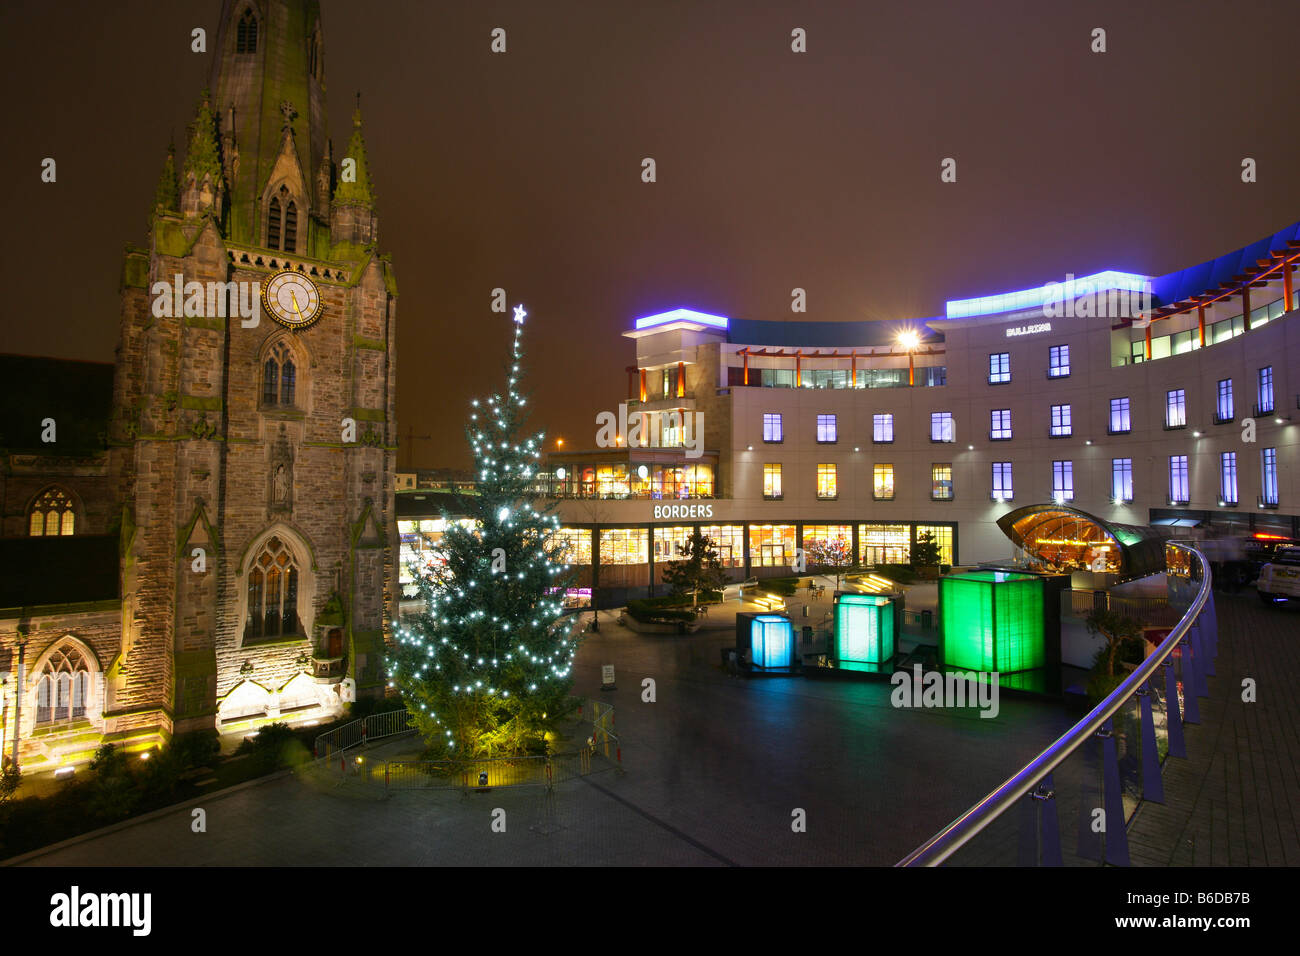 Bullring shopping centre england, st martins square and church, night time lit up, christmas decorations, tree, - Stock Image